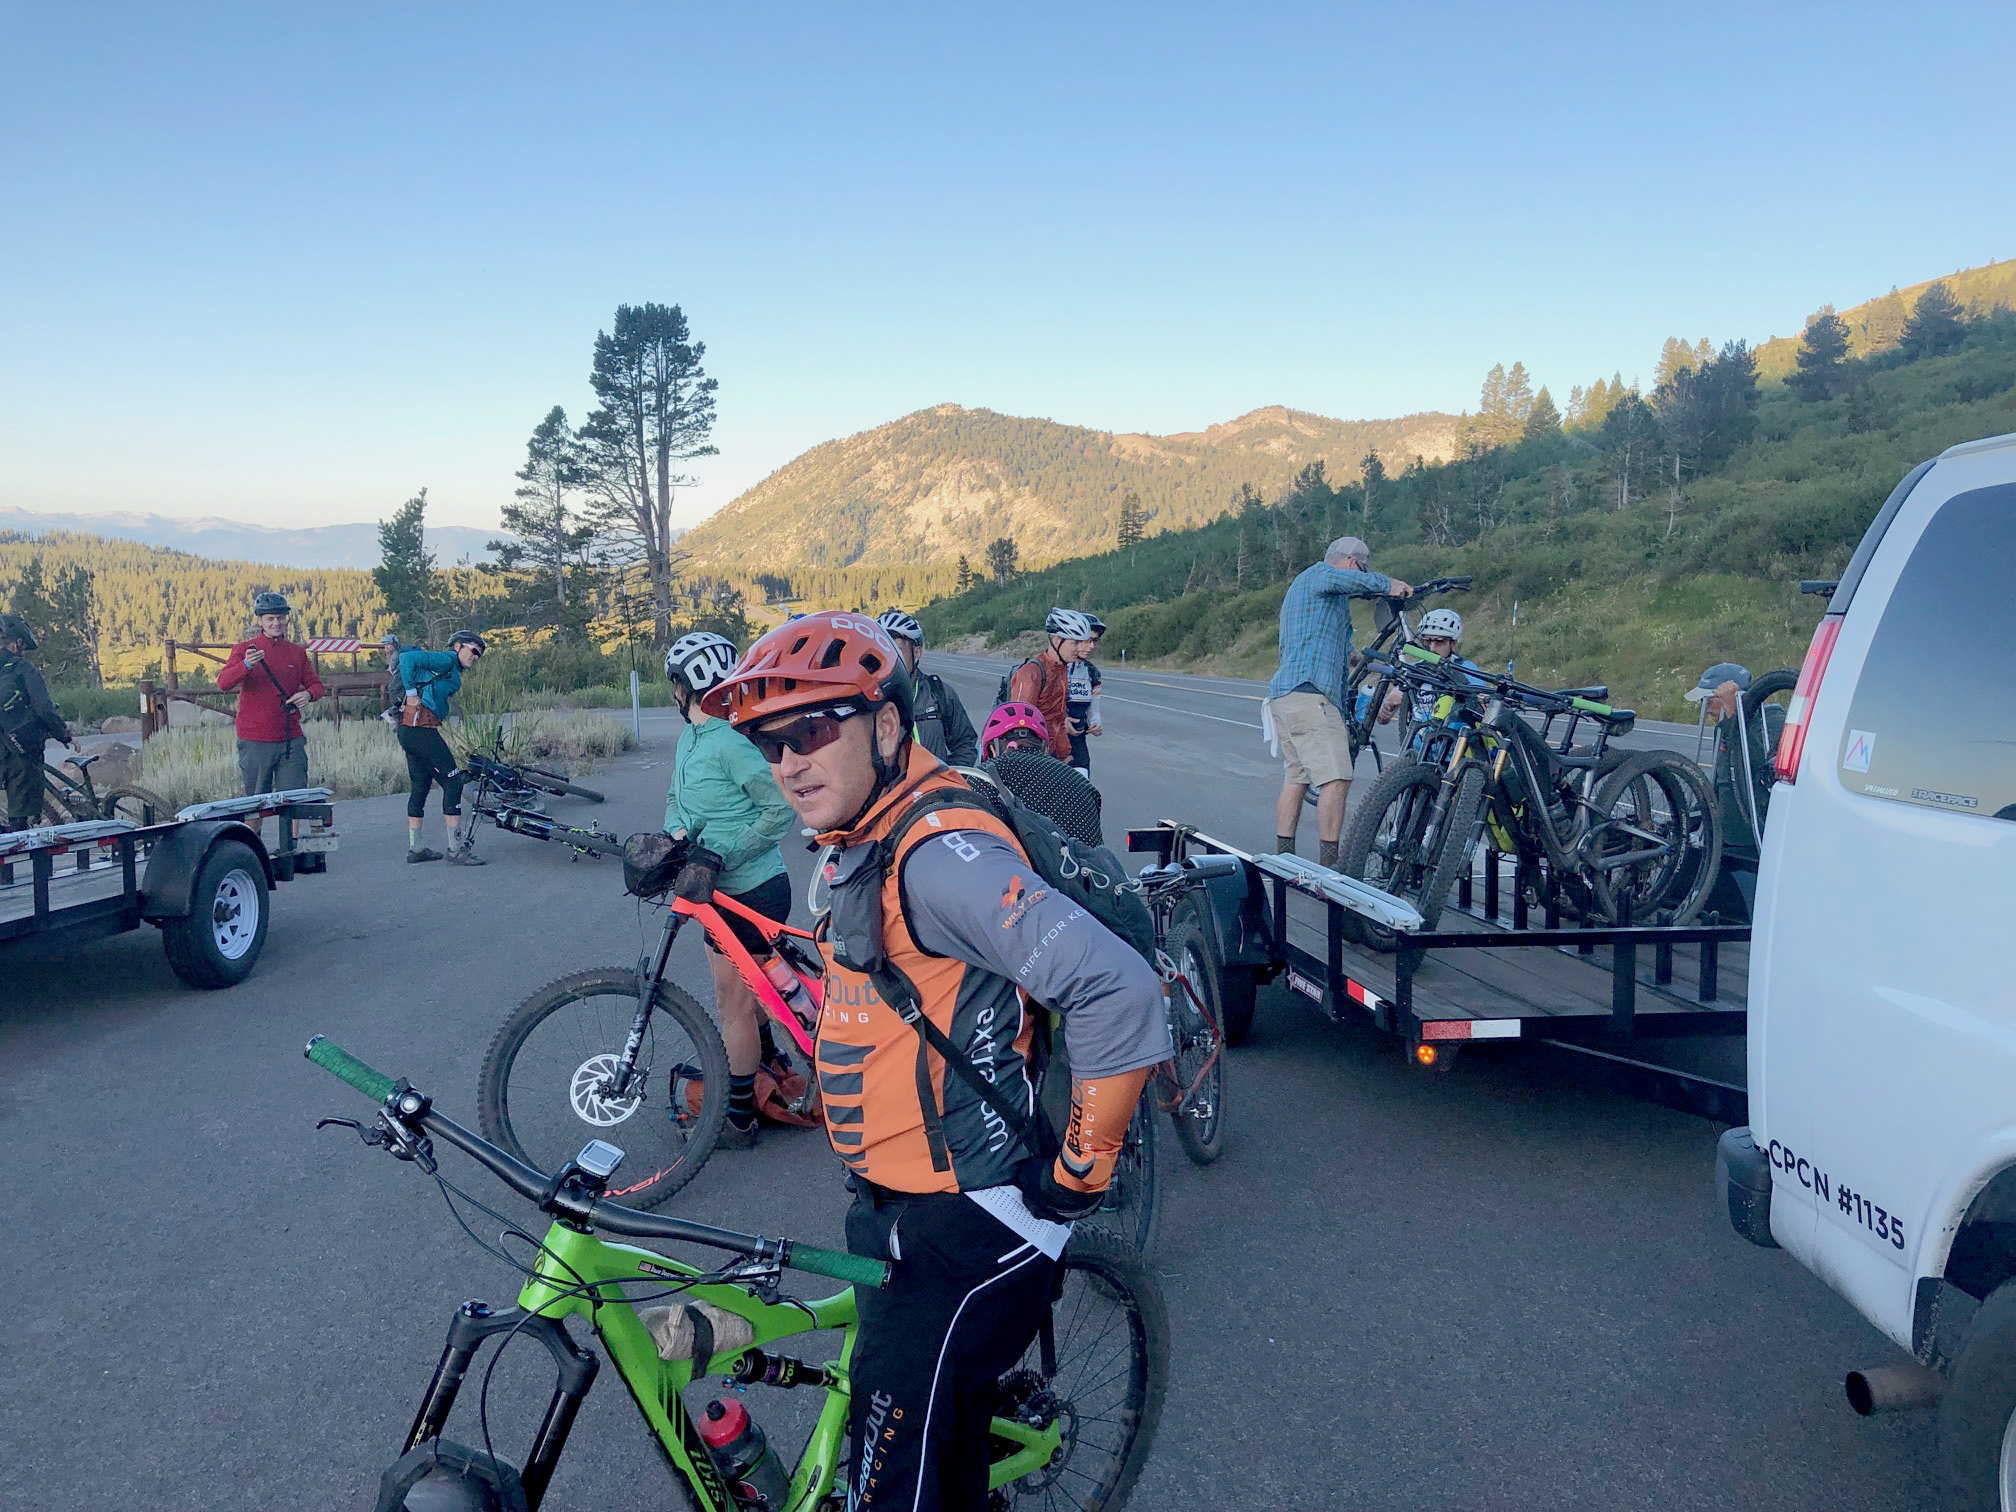 Mountain bikers getting ready to ride the Tahoe Rim Trail.